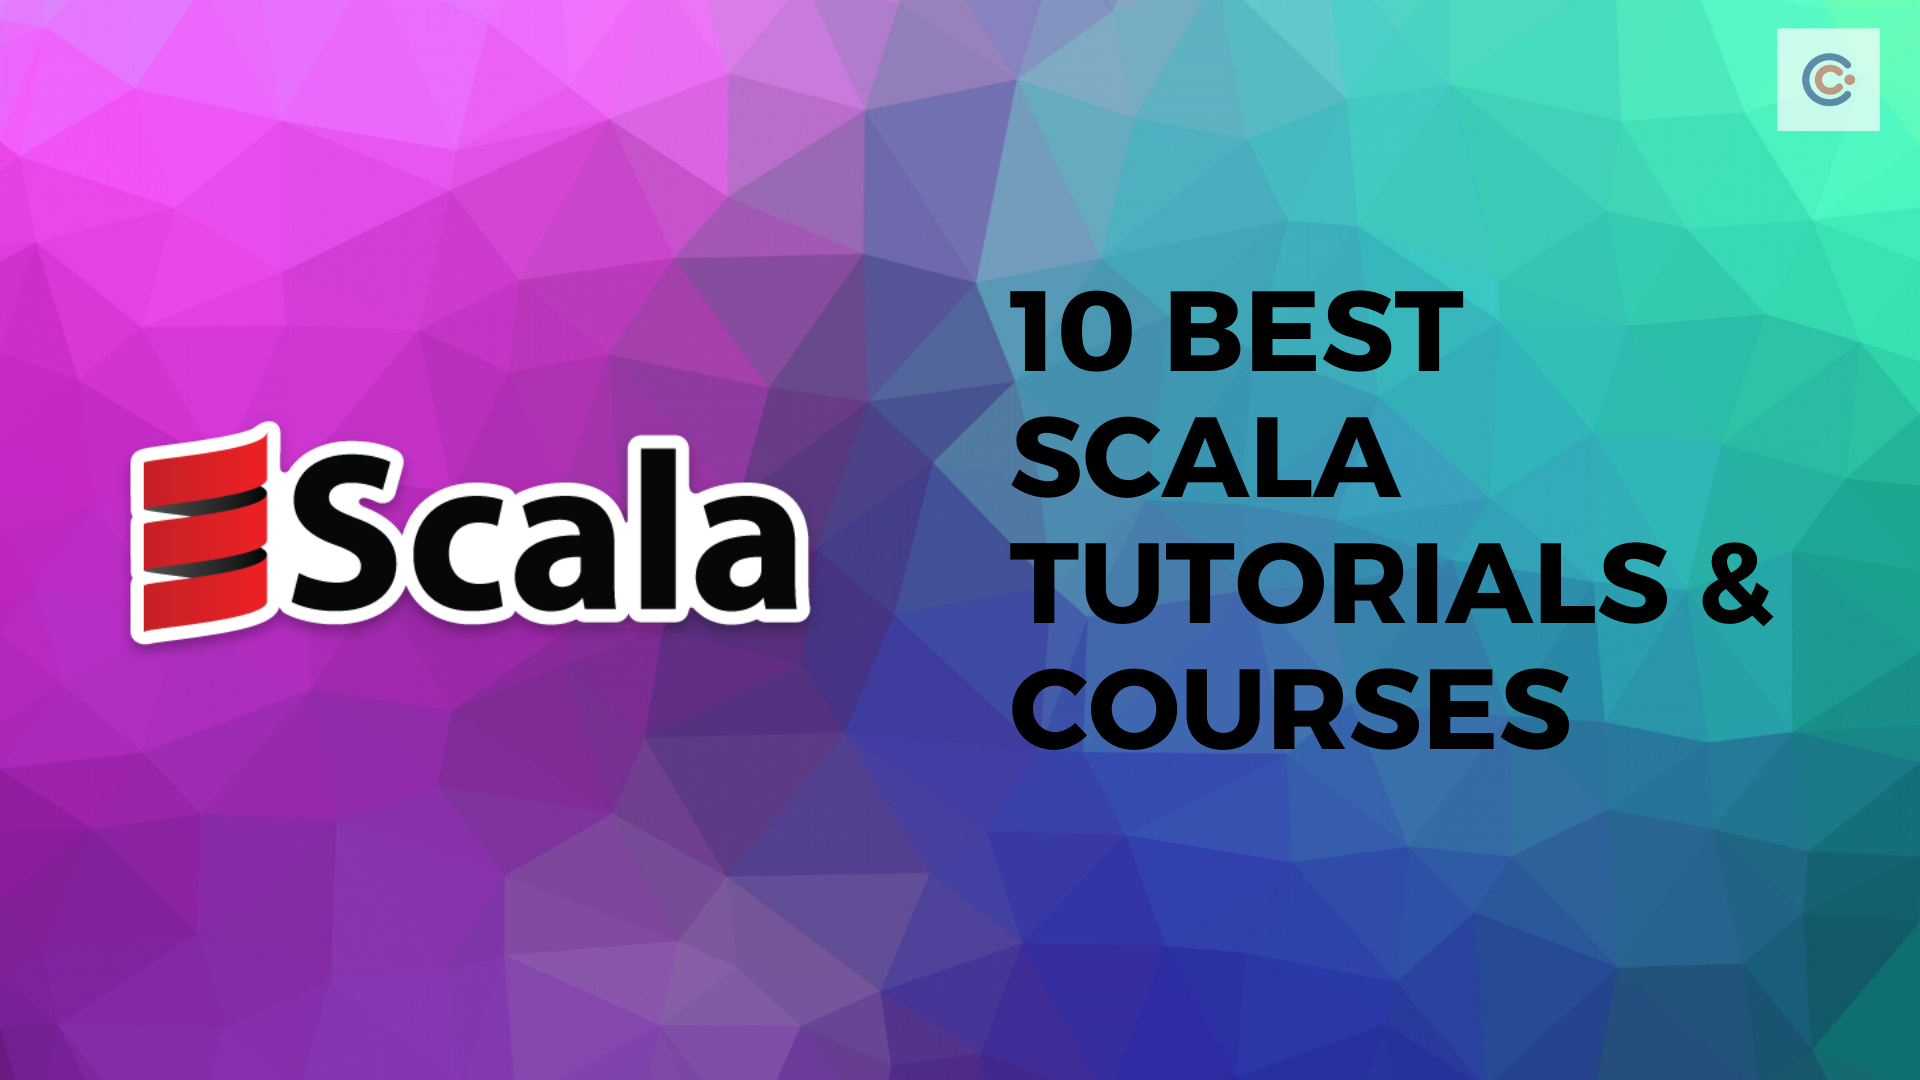 10 Best Scala Tutorials & Courses - Learn Scala Programming Online